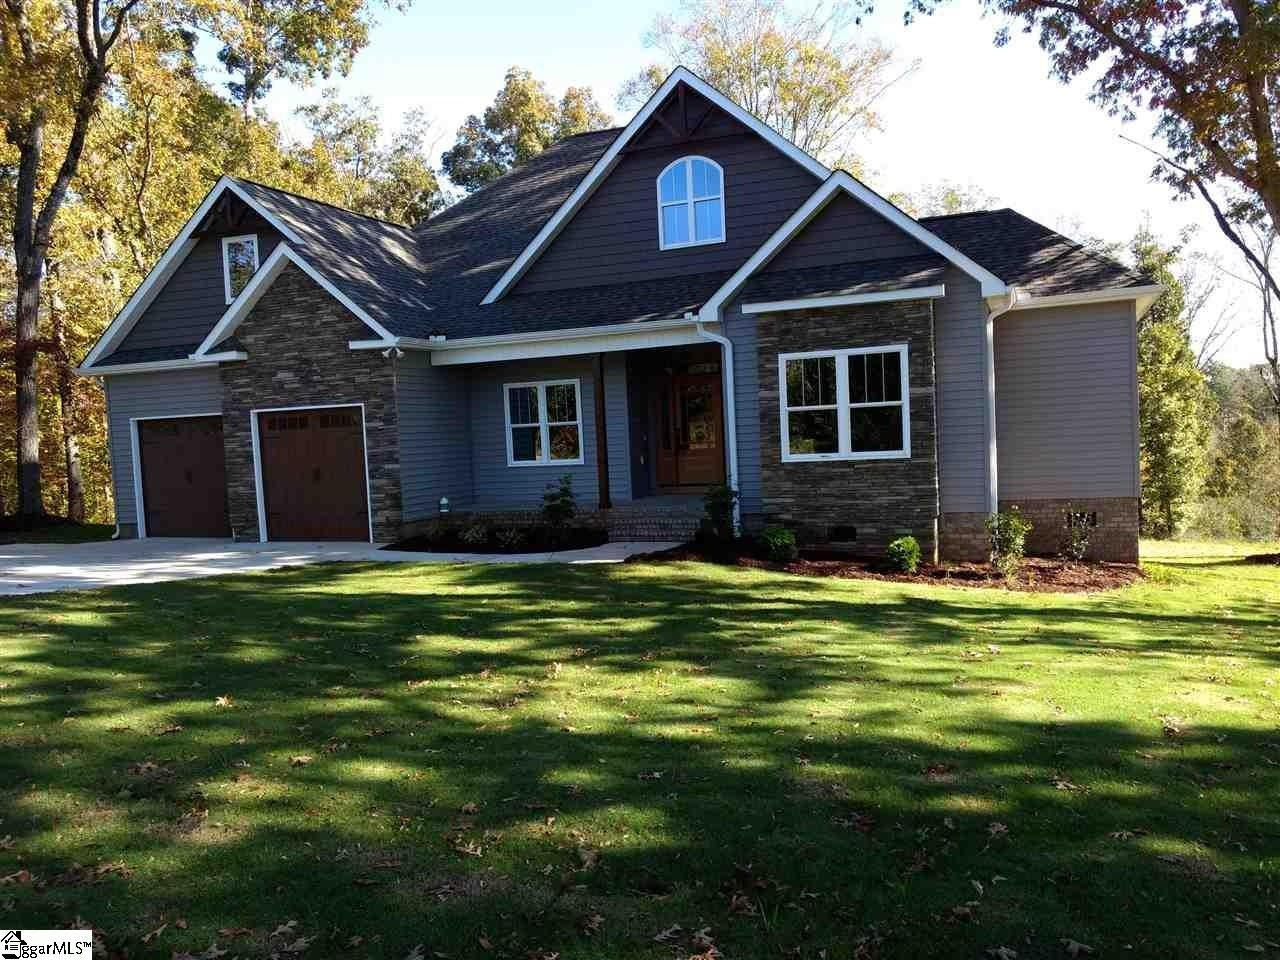 Search Results - Casey Group Real Estate intended for The Garden House Edgebrook Drive Anderson Sc